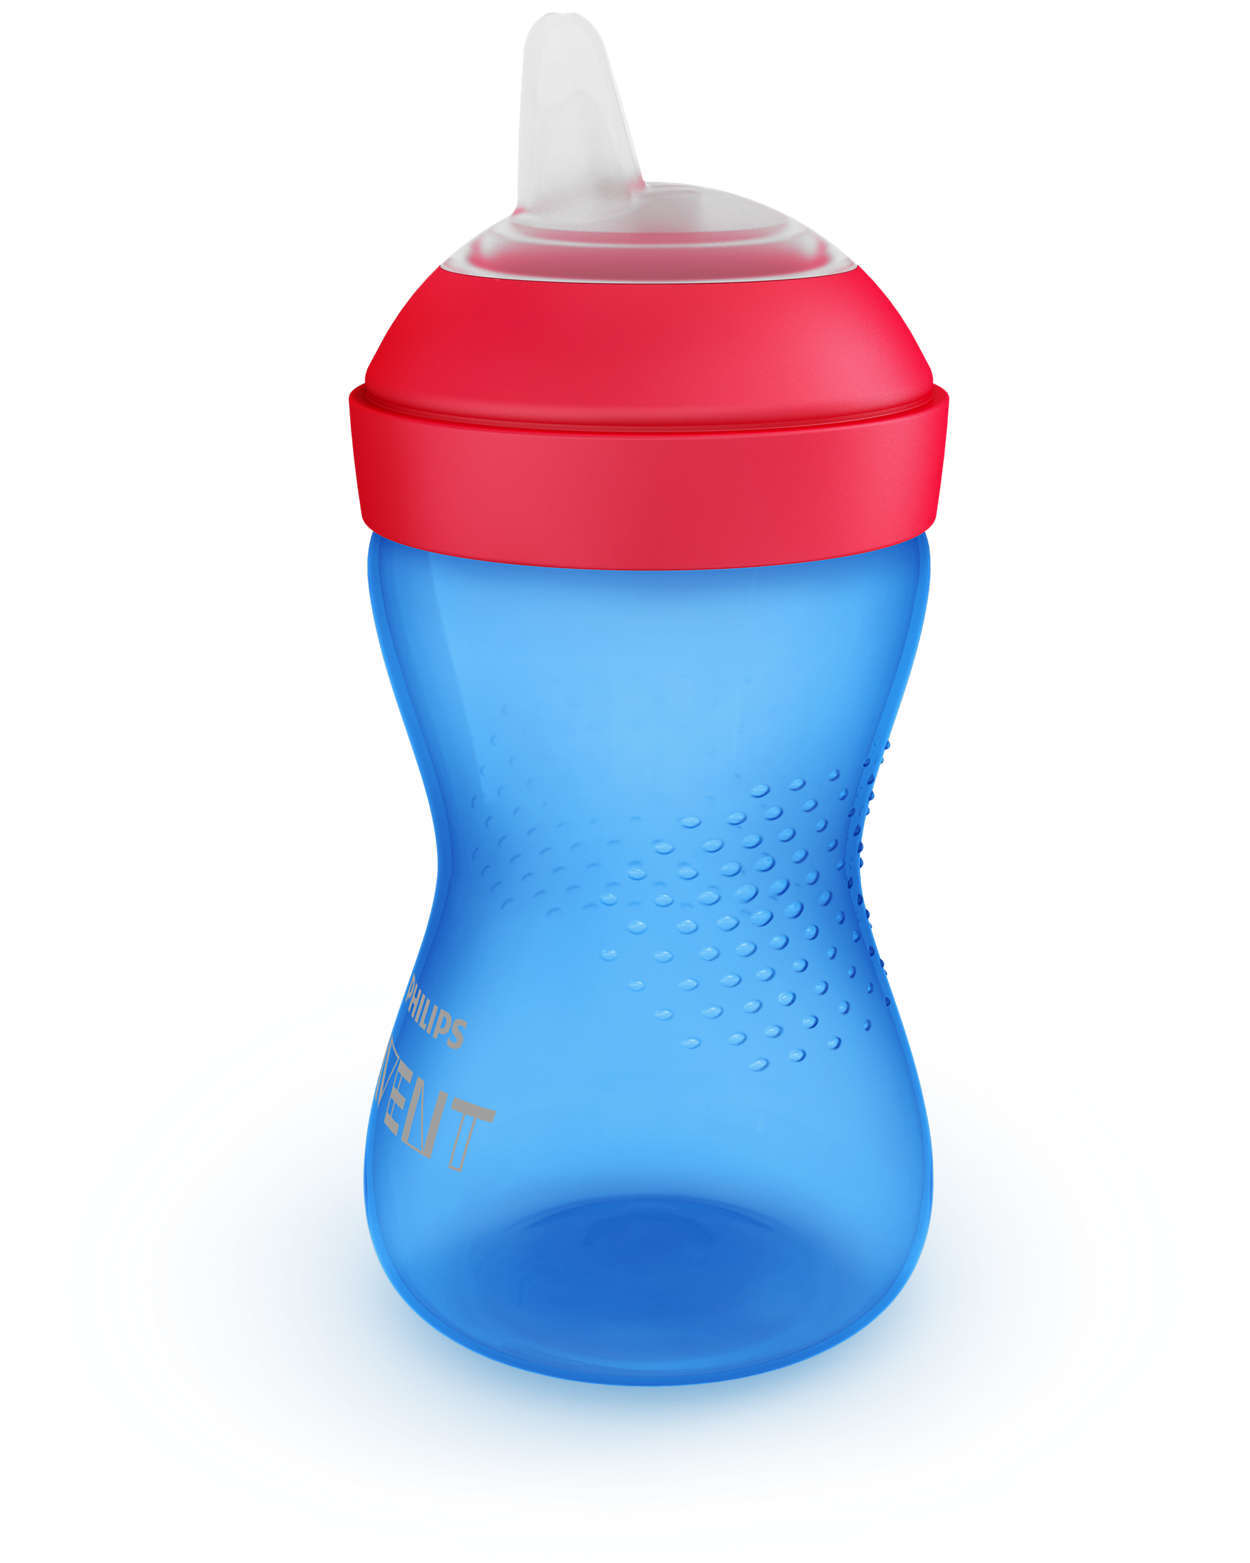 Avent Grippy Cup Soft - 300ml (Blue) image